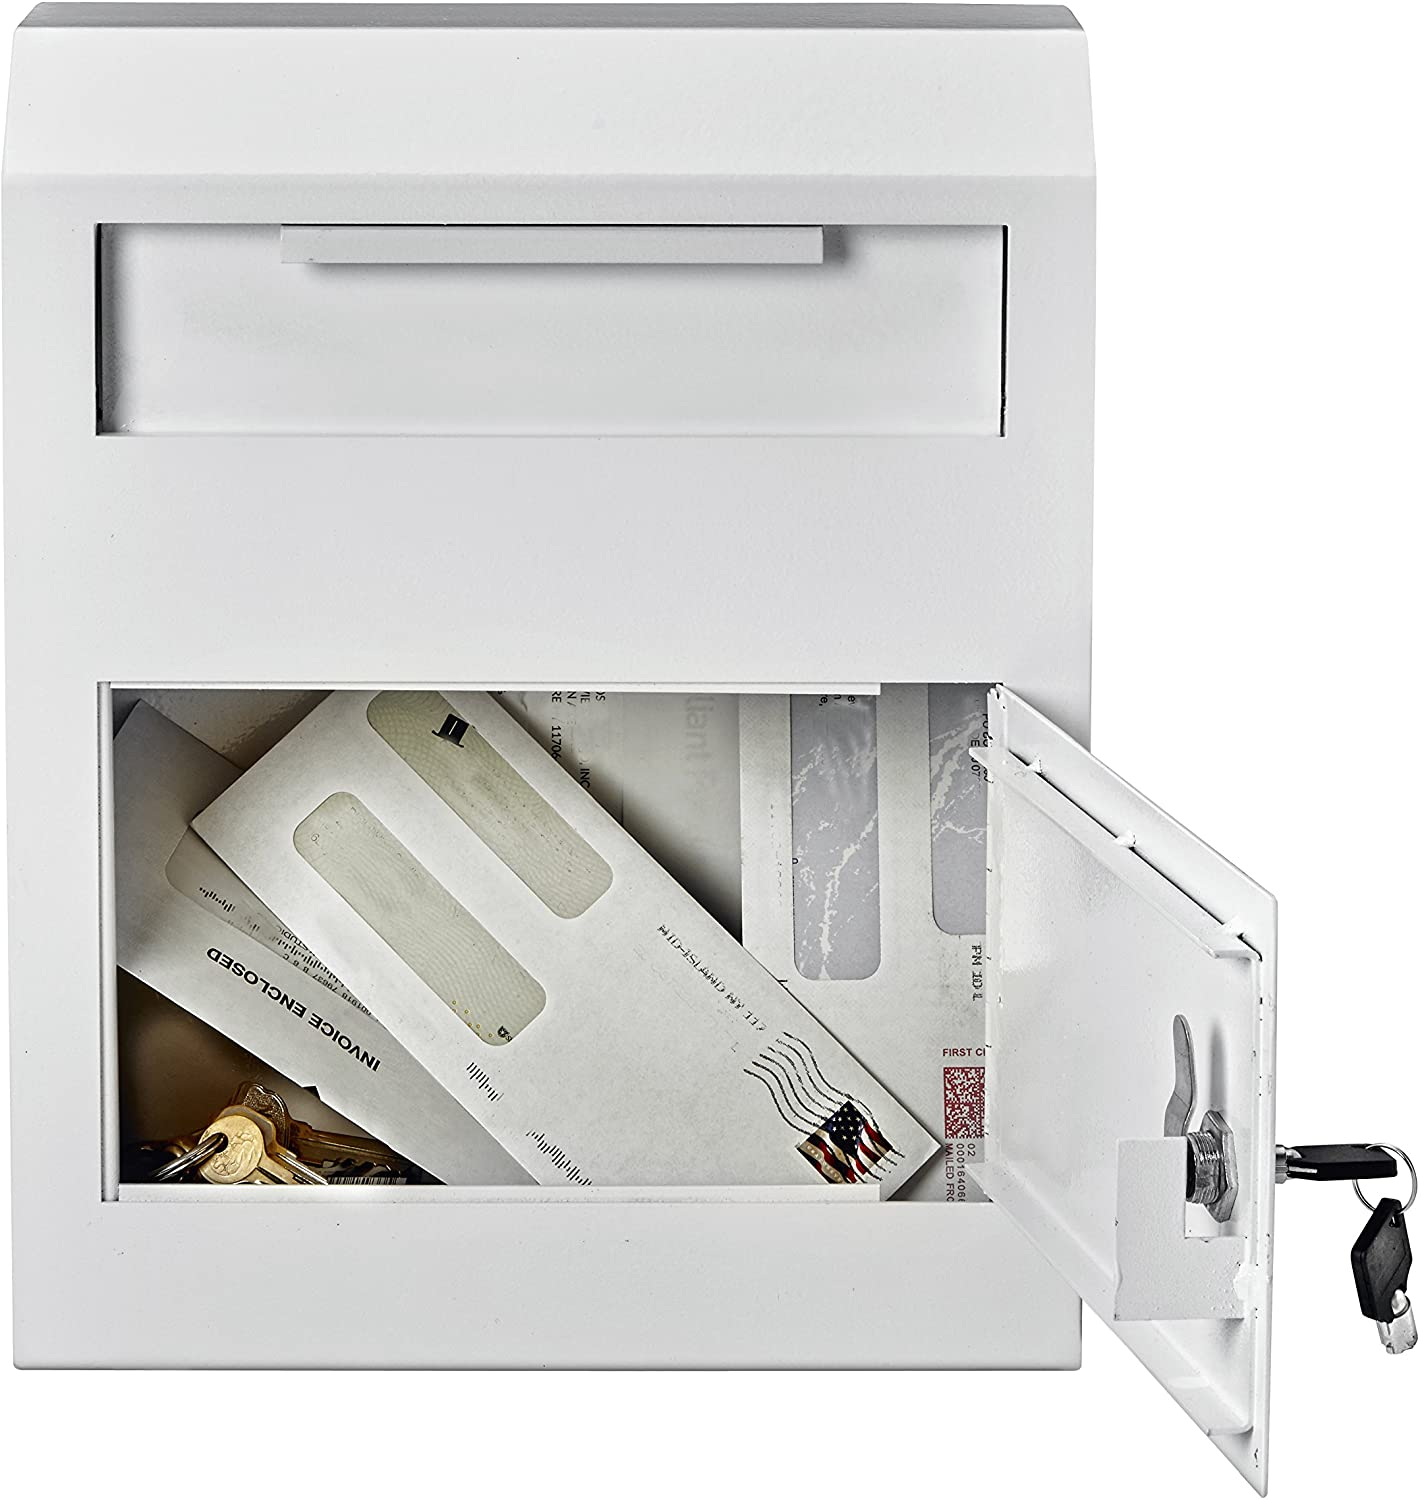 AdirOffice Heavy Duty Secured Safe Drop Box - Suggestion Box - Locking Mailbox - Key Drop Box - Wall Mounted Mail Box - Safe Lock Box - Ballot Box - Donation Box (White) : Office Products